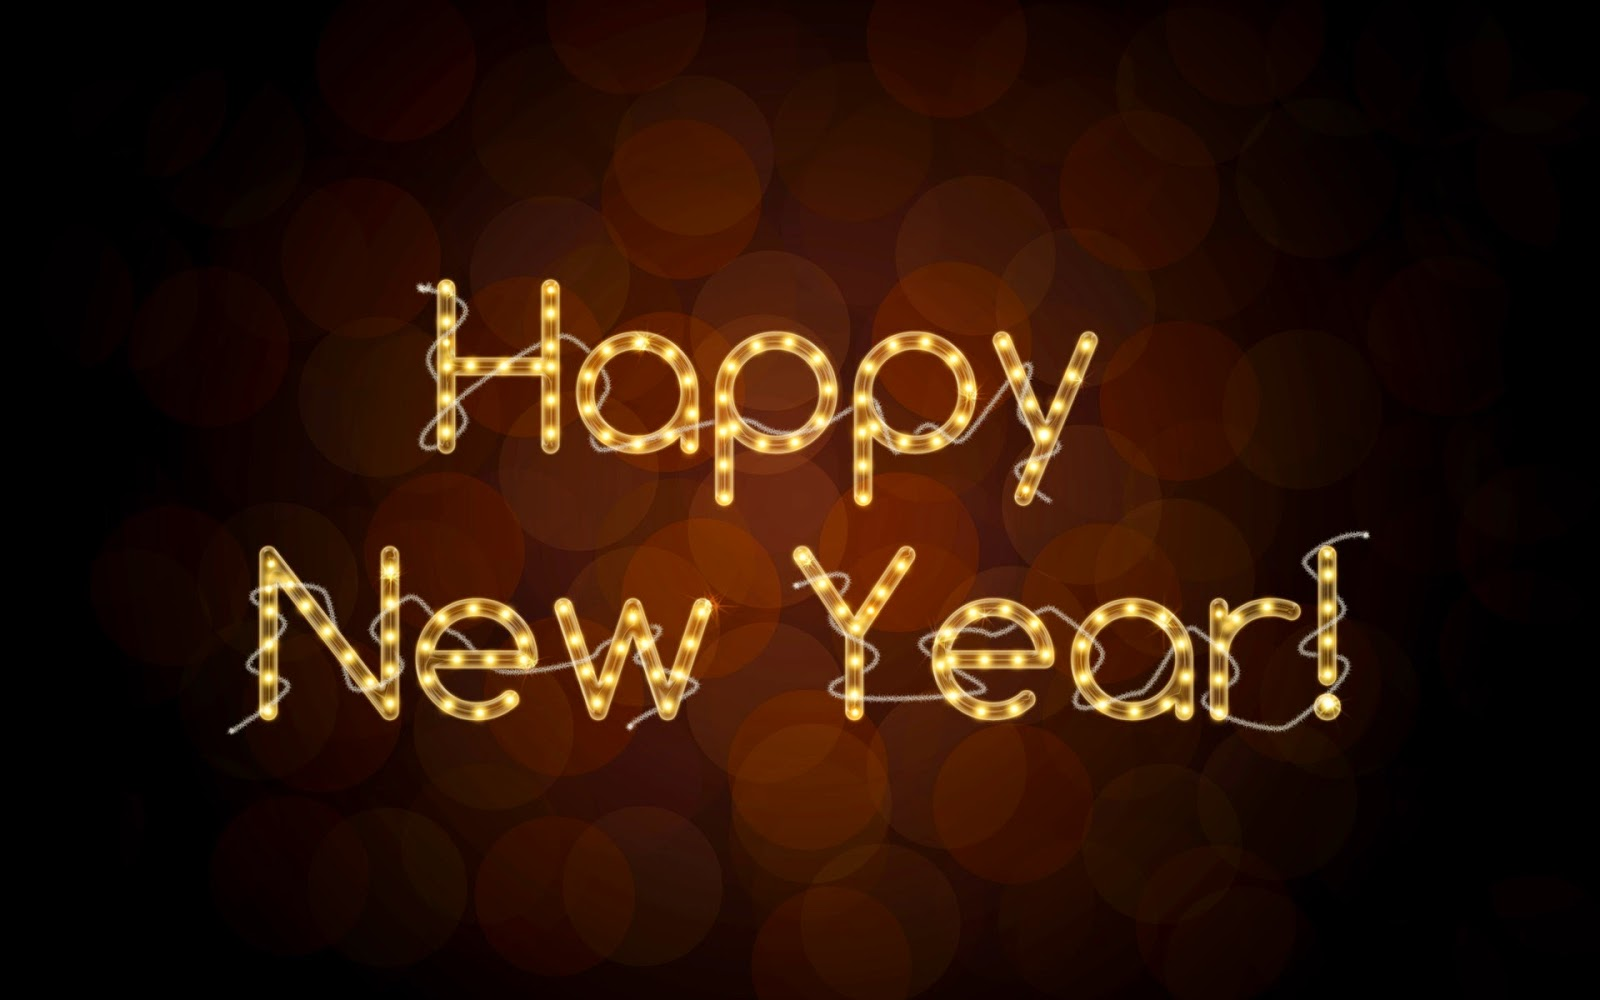 Coloring Pages For New Years 2016 : New year s eve buona bocca the beijinger